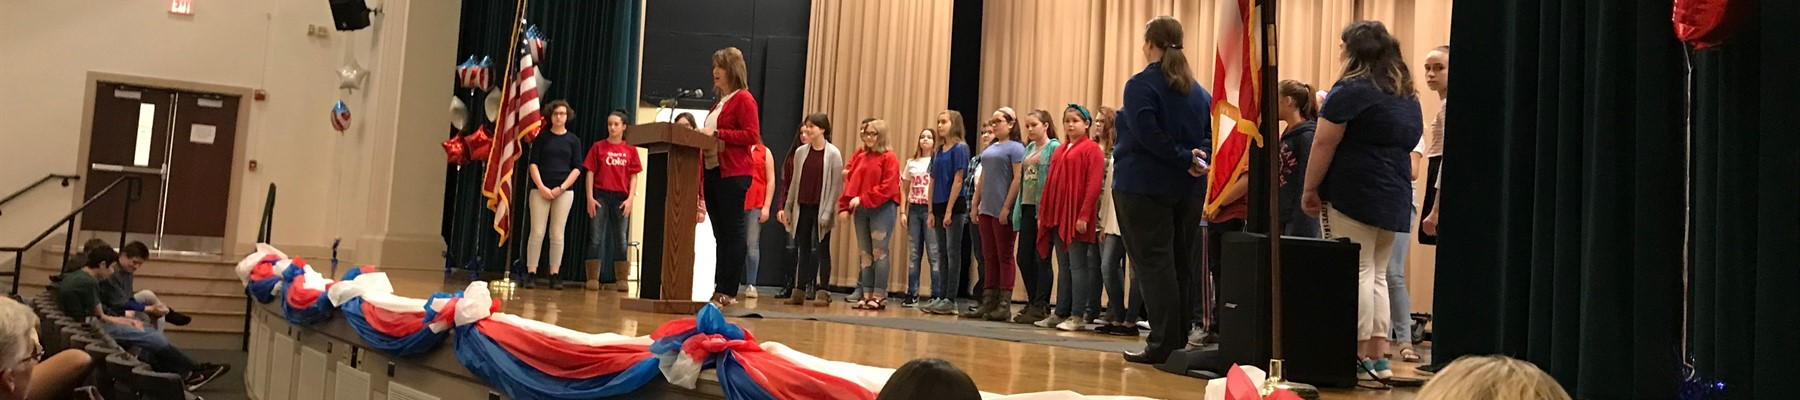 AMS Veteran's Day Celebration